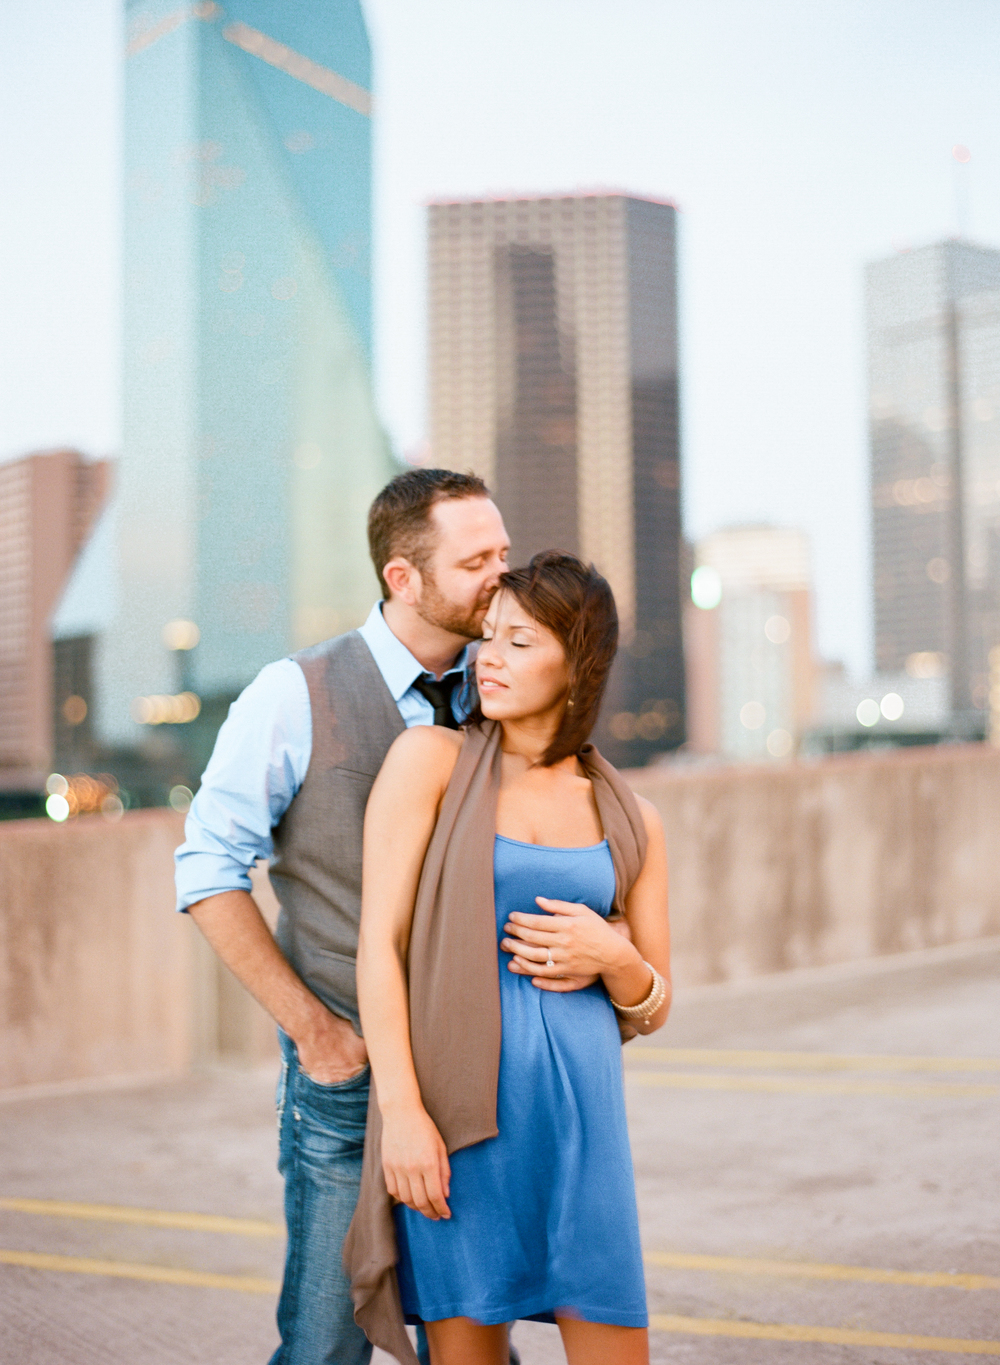 Downtown Dallas Texas Engagement Photography by Jessica Garmon